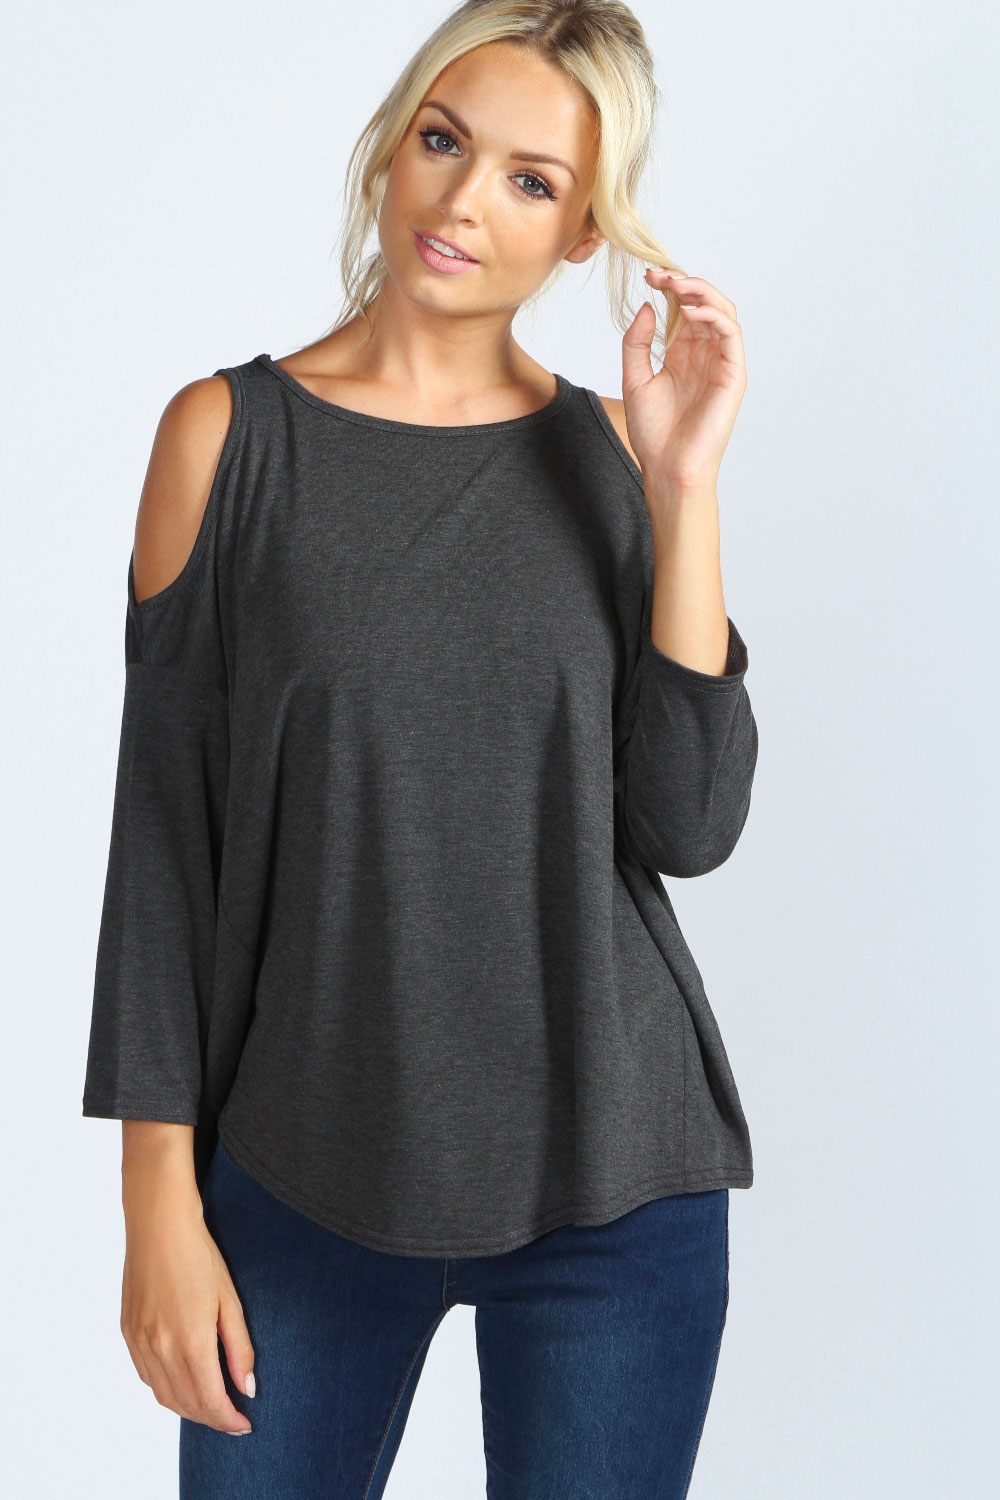 Clothes, Shoes & Accessories > Women's Clothing > Tops & Shirts